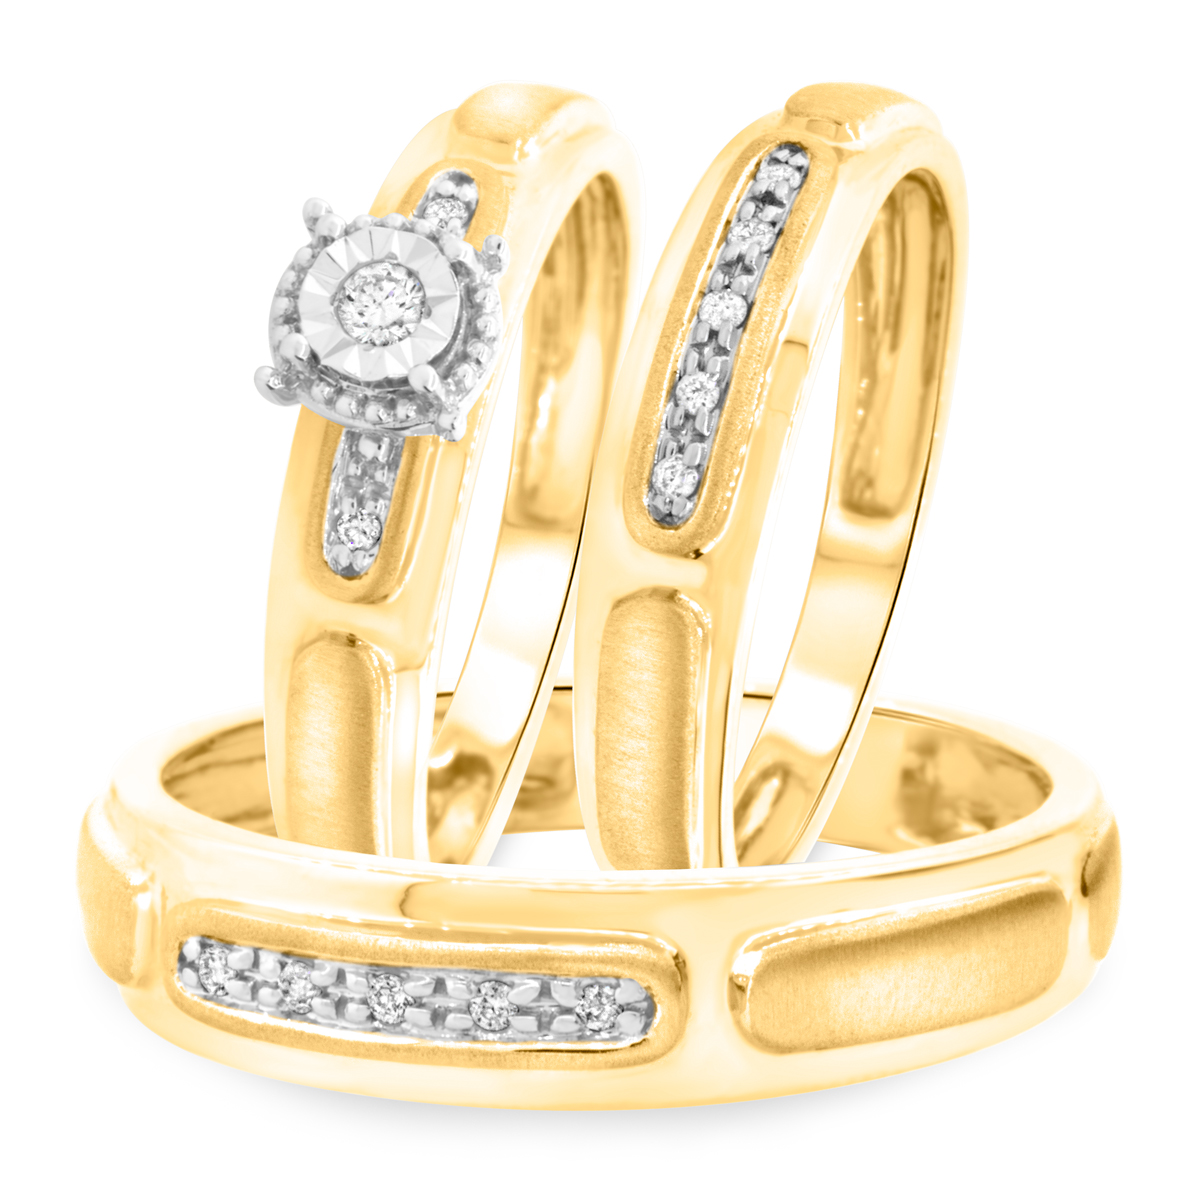 18 carat t w round cut diamond matching trio wedding ring set 14k yellow gold trio wedding ring set 1 8 Carat T W Round Cut Diamond Matching Trio Wedding Ring Set 14K Yellow Gold